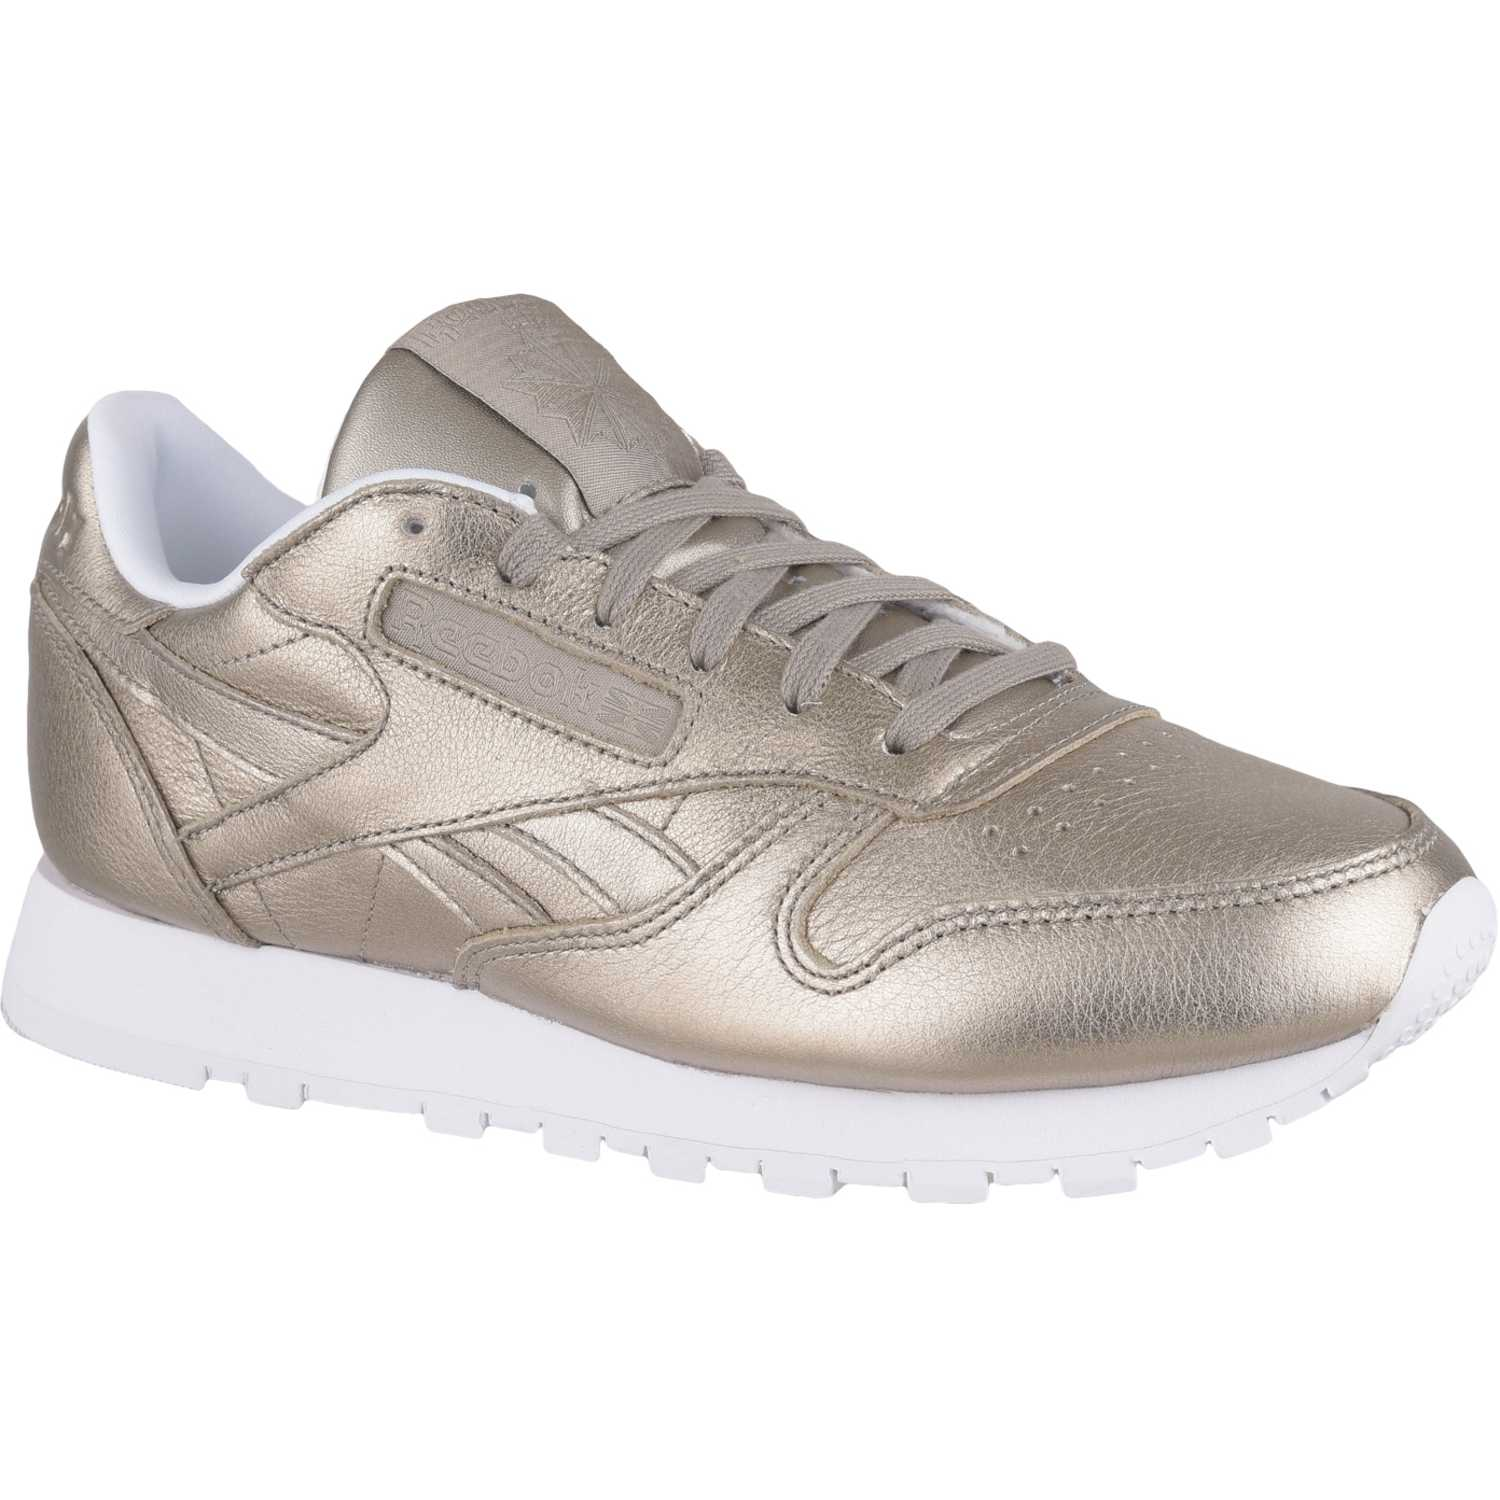 Reebok Classic Mujer Classic Leather Melted Metals